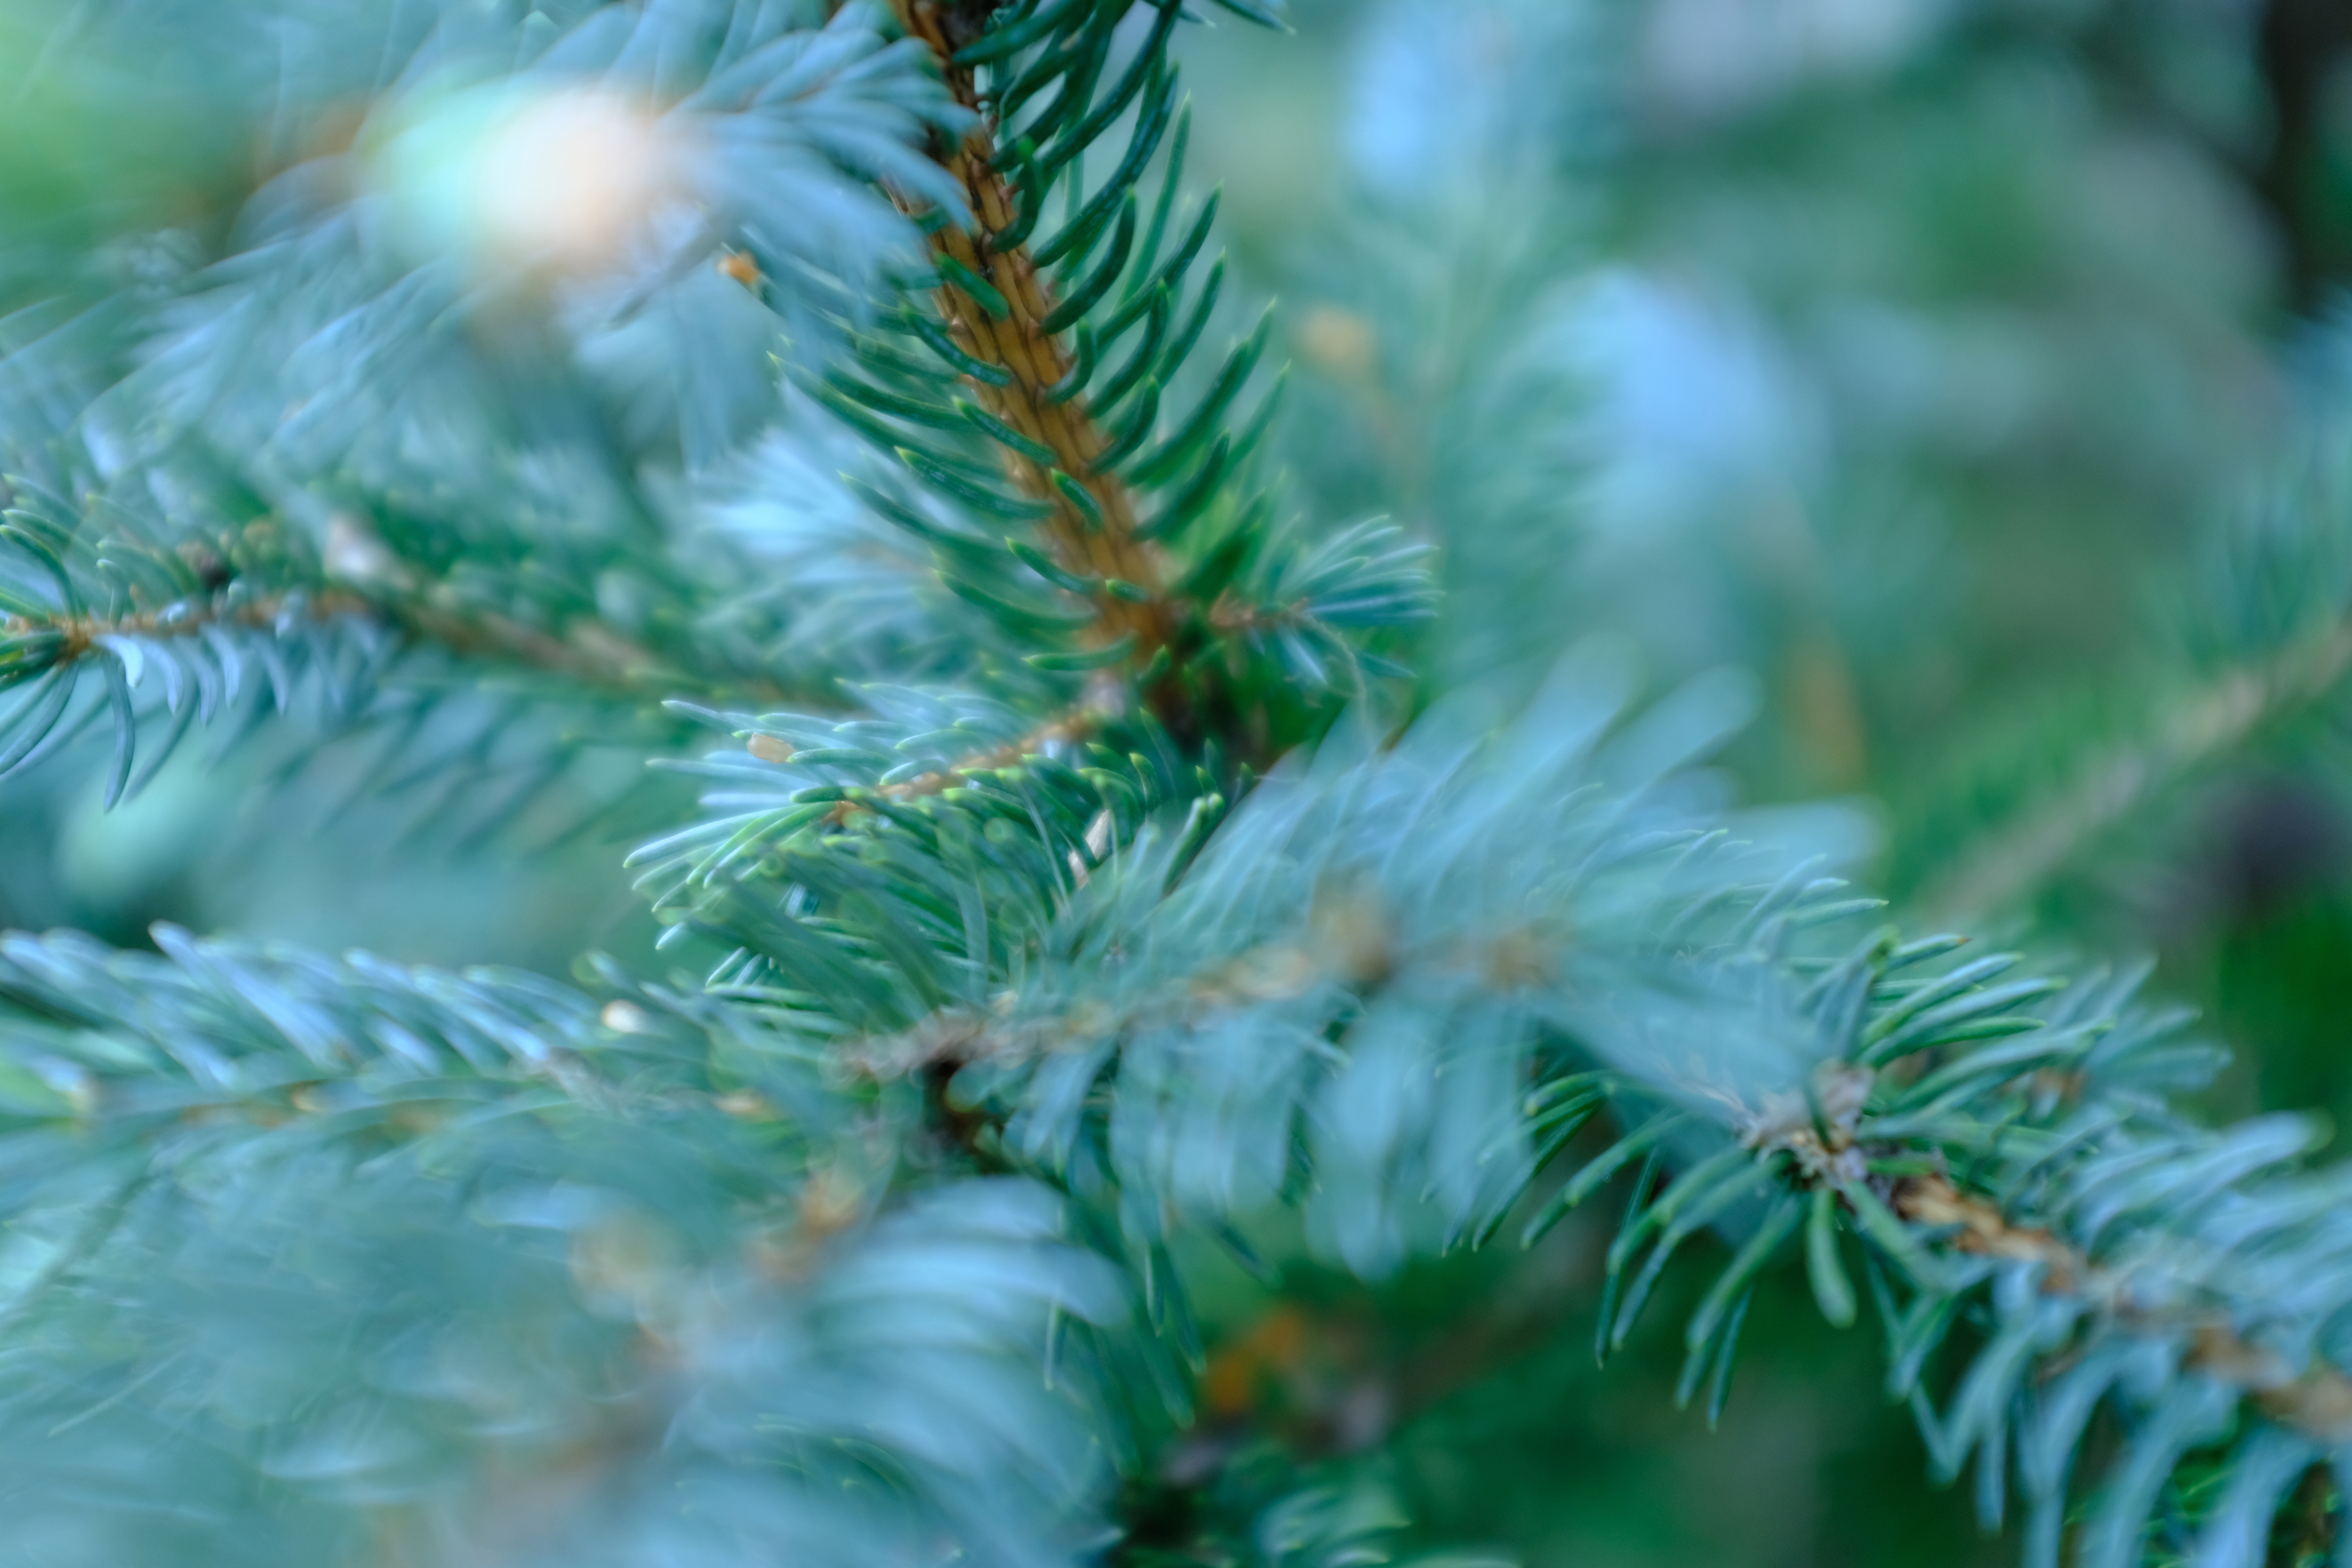 Needles and branches of blue spruce tree